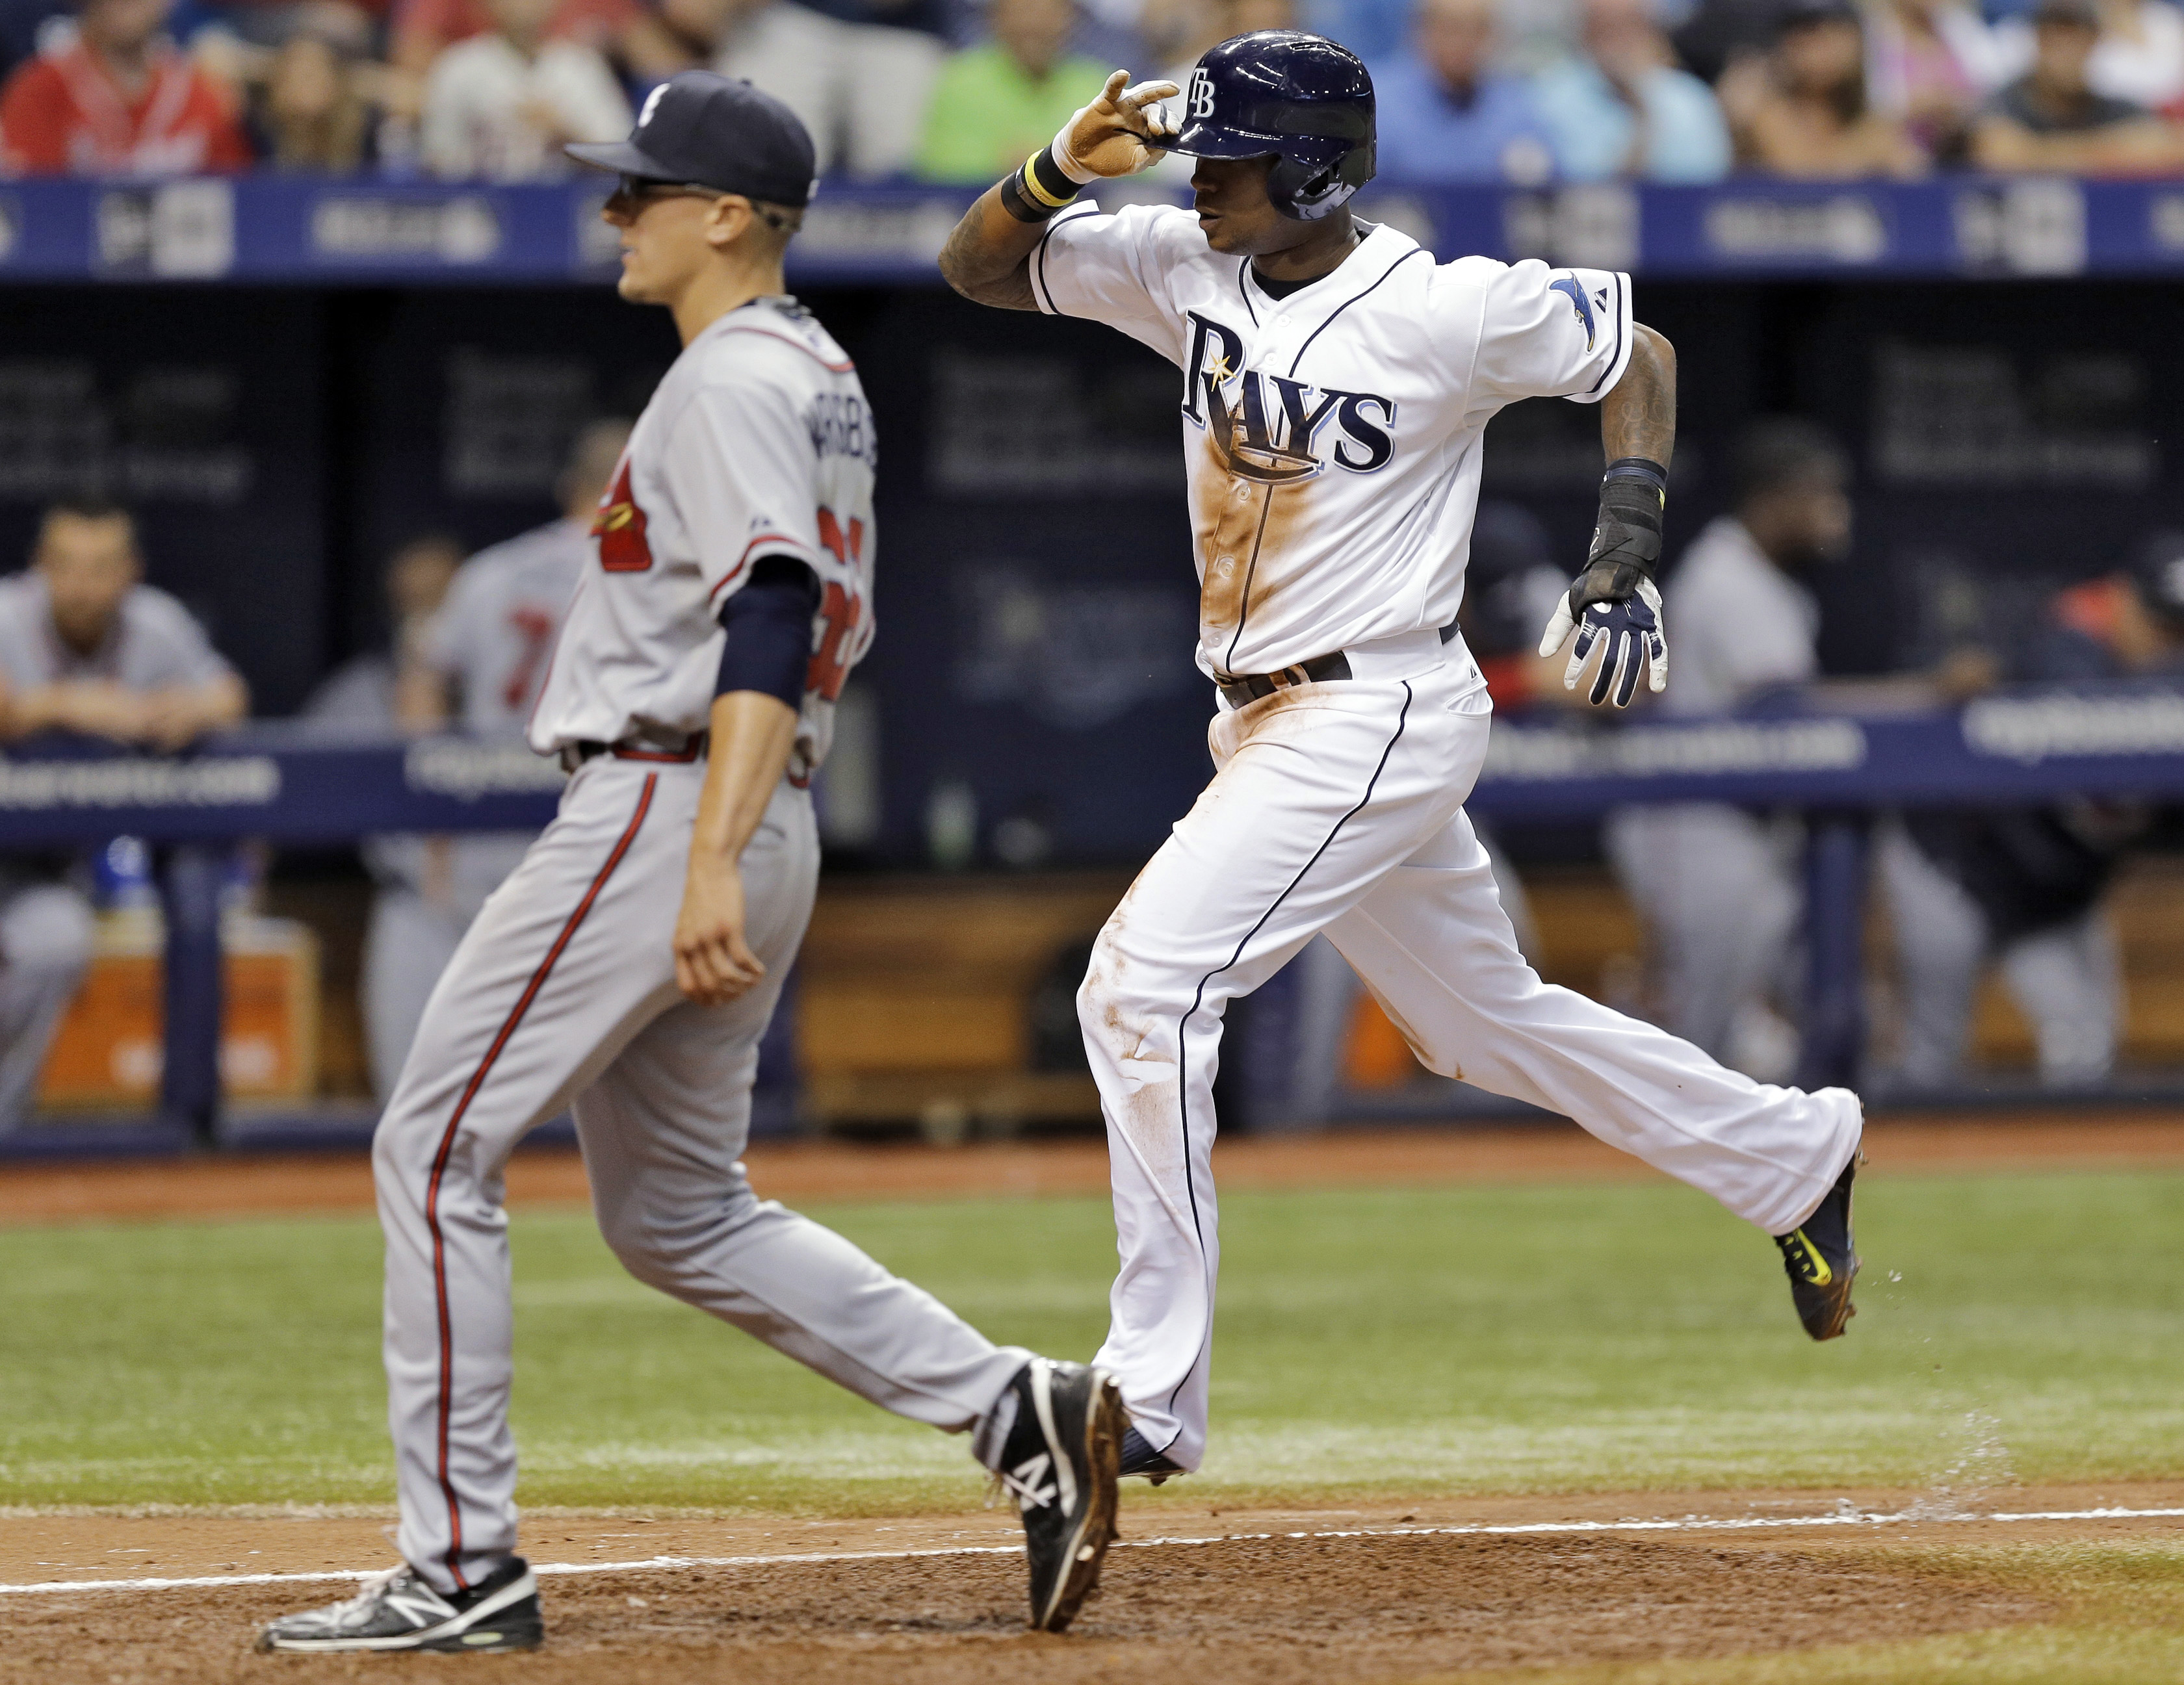 Tampa Bay Rays' Tim Beckham, right, scores next to Atlanta Braves relief pitcher Matt Marksberry on a wild pitch by Marksberry during the seventh inning of a baseball game Wednesday, Aug. 12, 2015, in St. Petersburg, Fla. (AP Photo/Chris O'Meara)